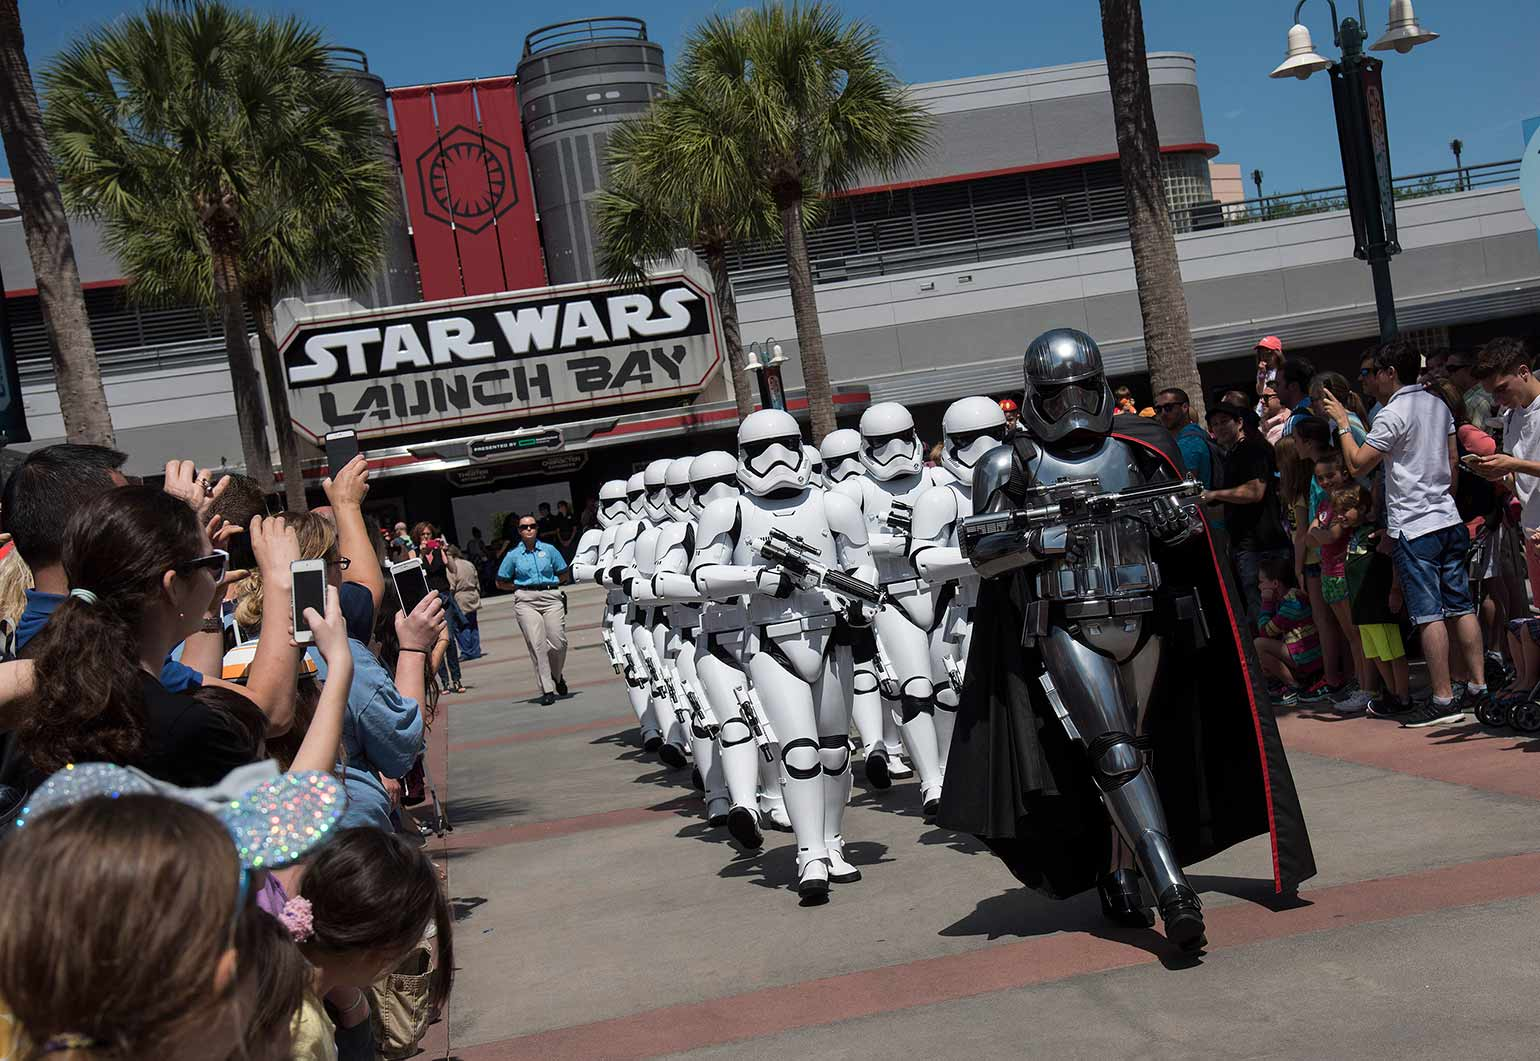 Le capitaine Phasma de Star Wars dirige les Stormtroopers aux studios de Hollywood de Disney